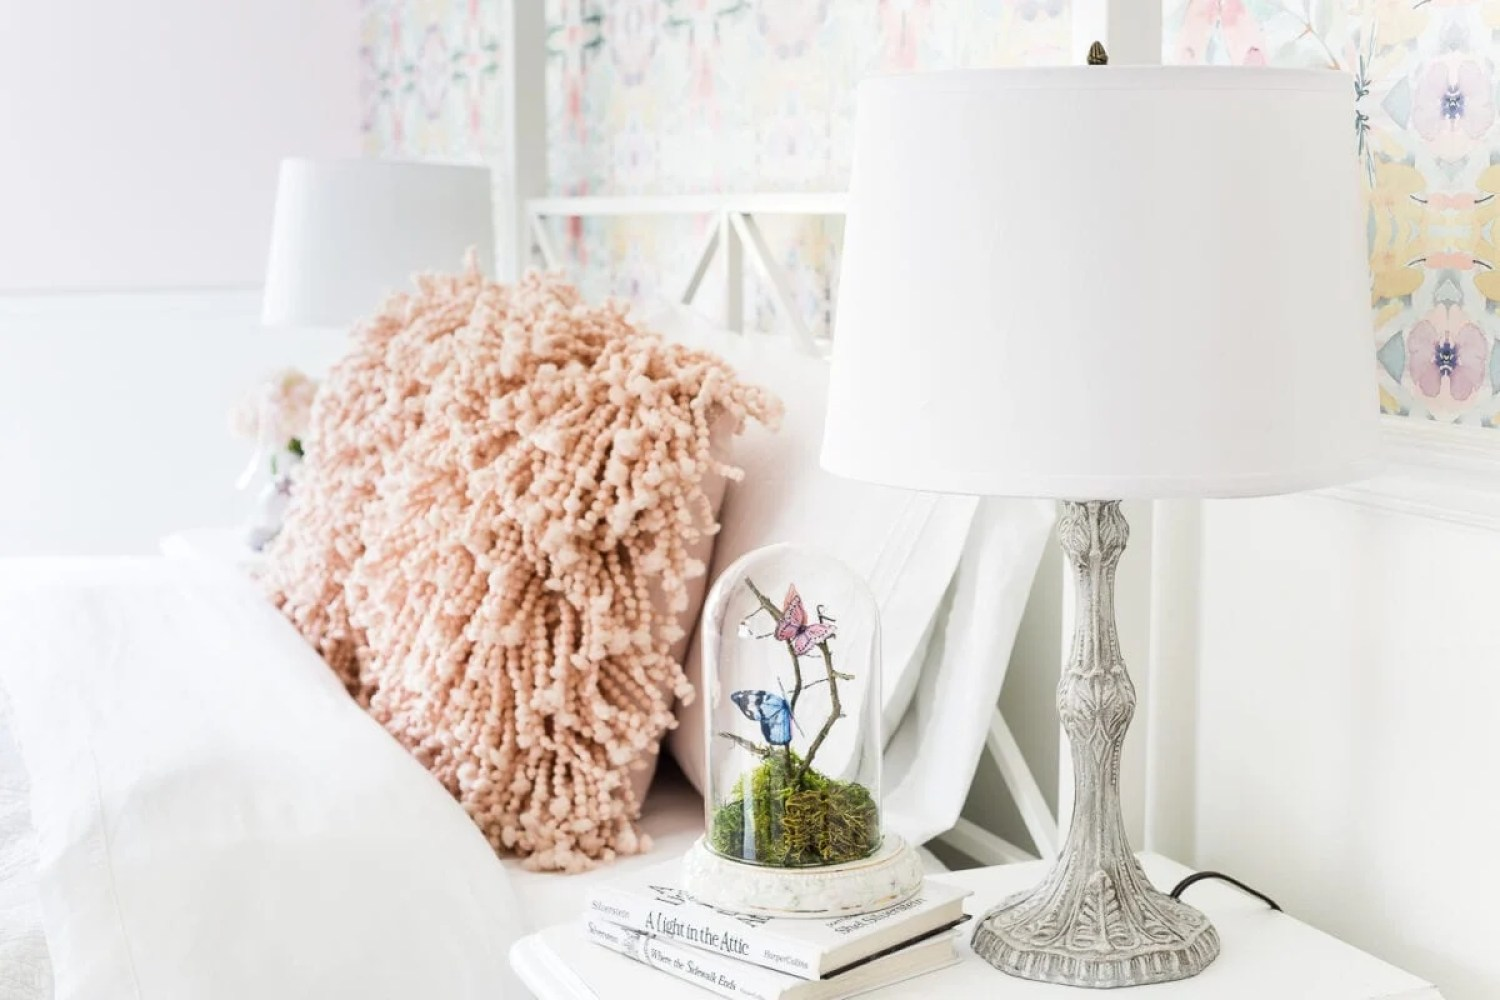 A thrifted table lamp gets a French Baroque designer inspired makeover using Annie Sloan Chalk Paint in Paris Grey, Pure White, clear wax, and dark wax. #thriftdecor #thrifted #thrifting #thriftmakeover #lamp #bedroom #girlbedroom #littlegirlbedroom #frenchdecor #femininedecor #designerknockoff #designerdecor